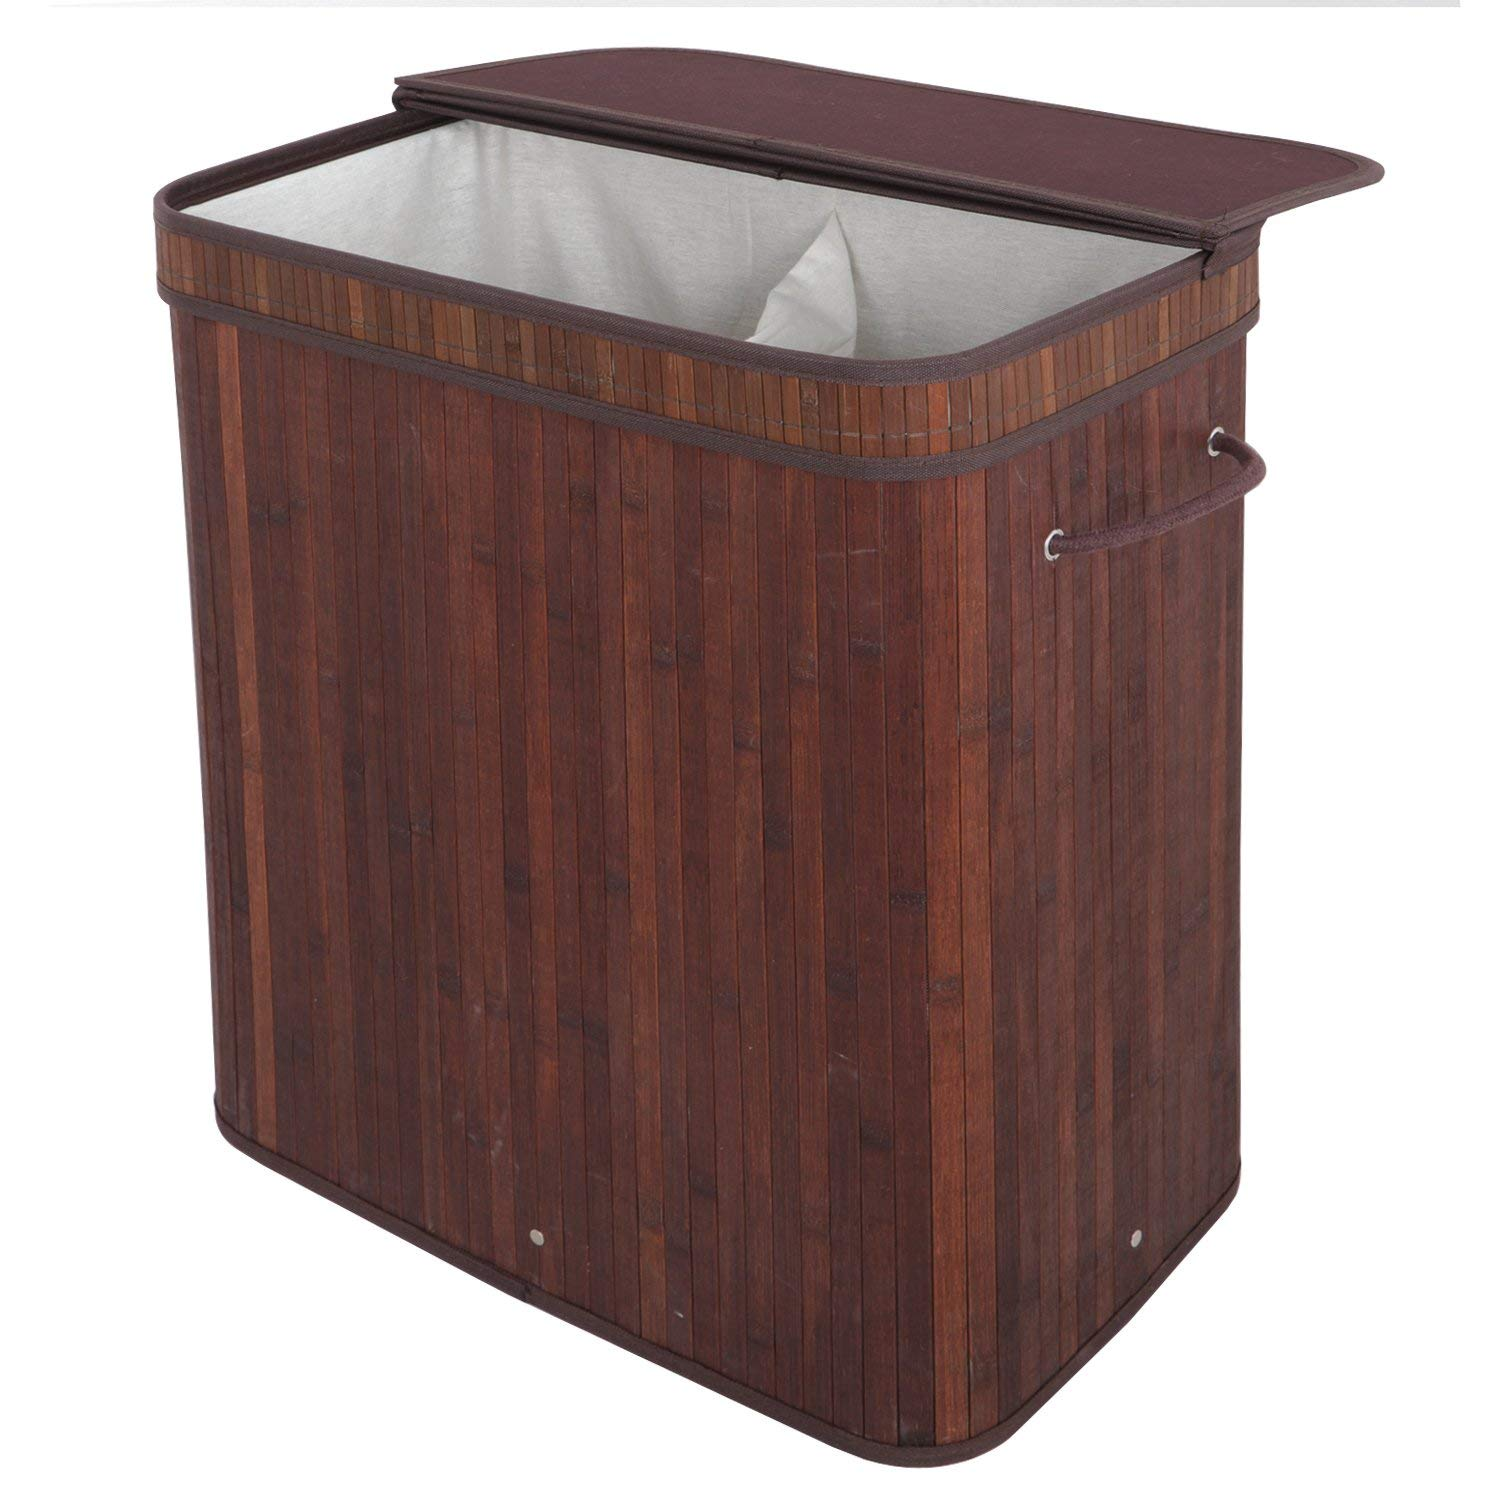 Zeny Laundry Hamper with lid 2 Section Dirty Clothes Basket Double Compartment Sorter